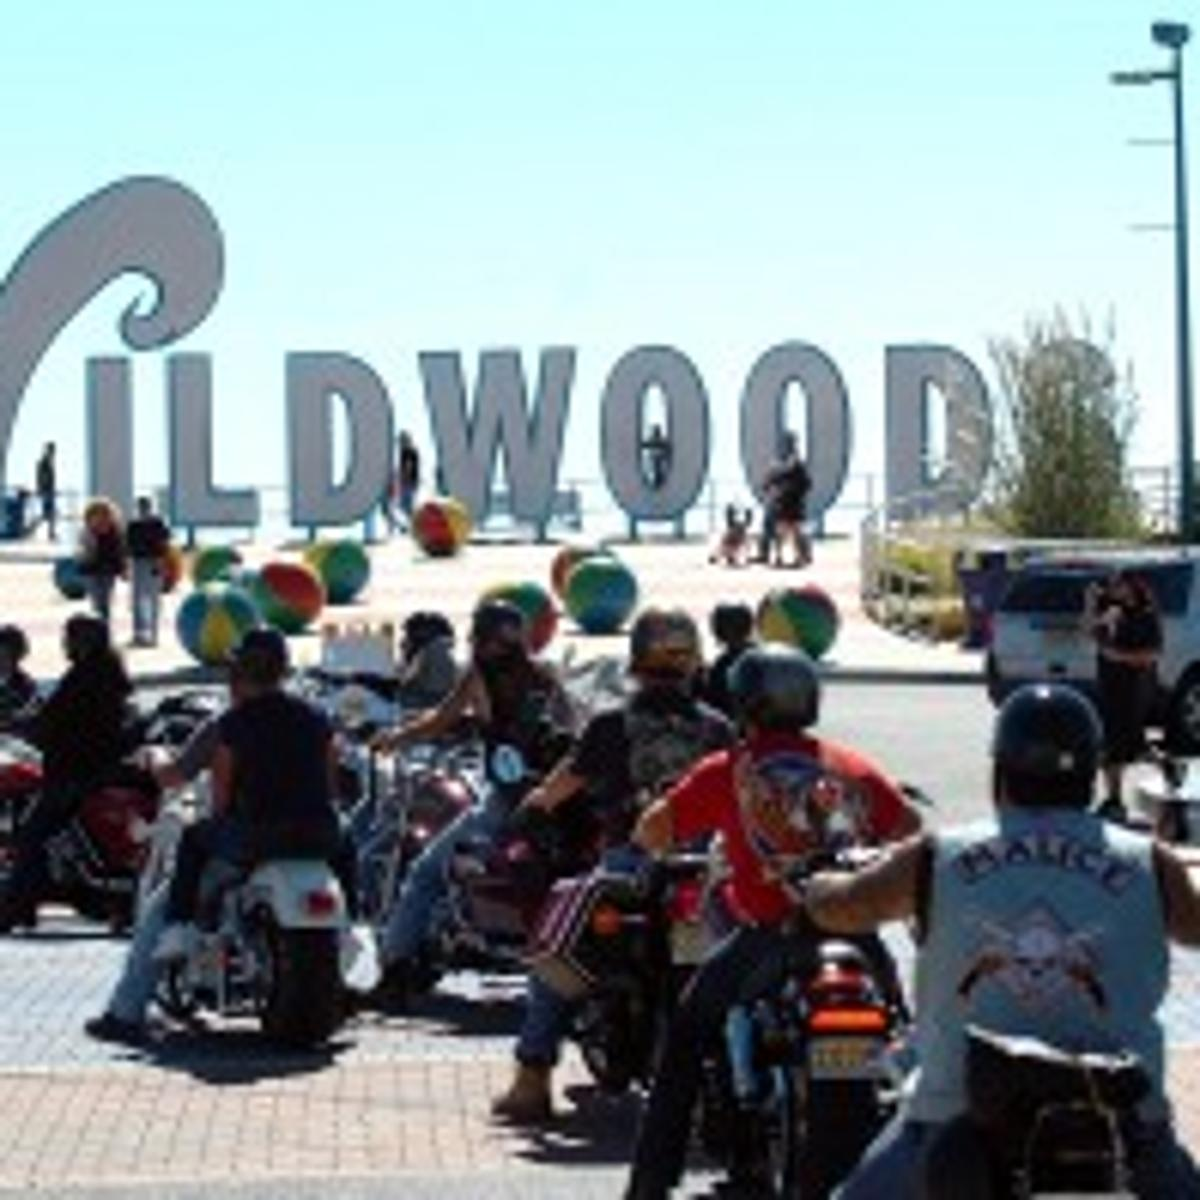 Pagans bikers discussed plot to kill Hell's Angels during